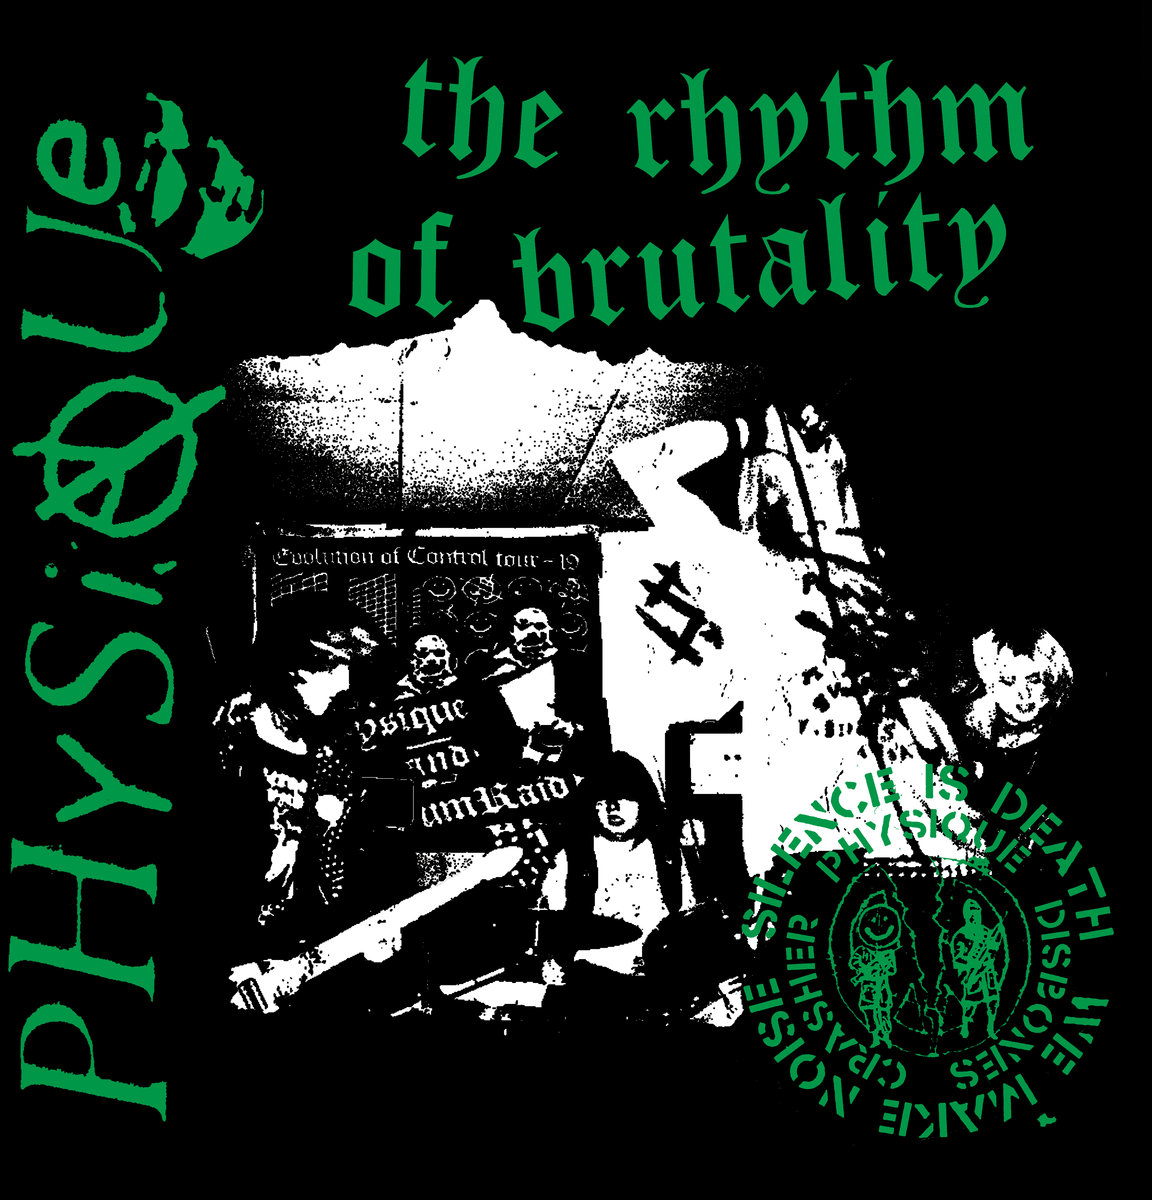 Physique - The Rhythm of Brutality LP